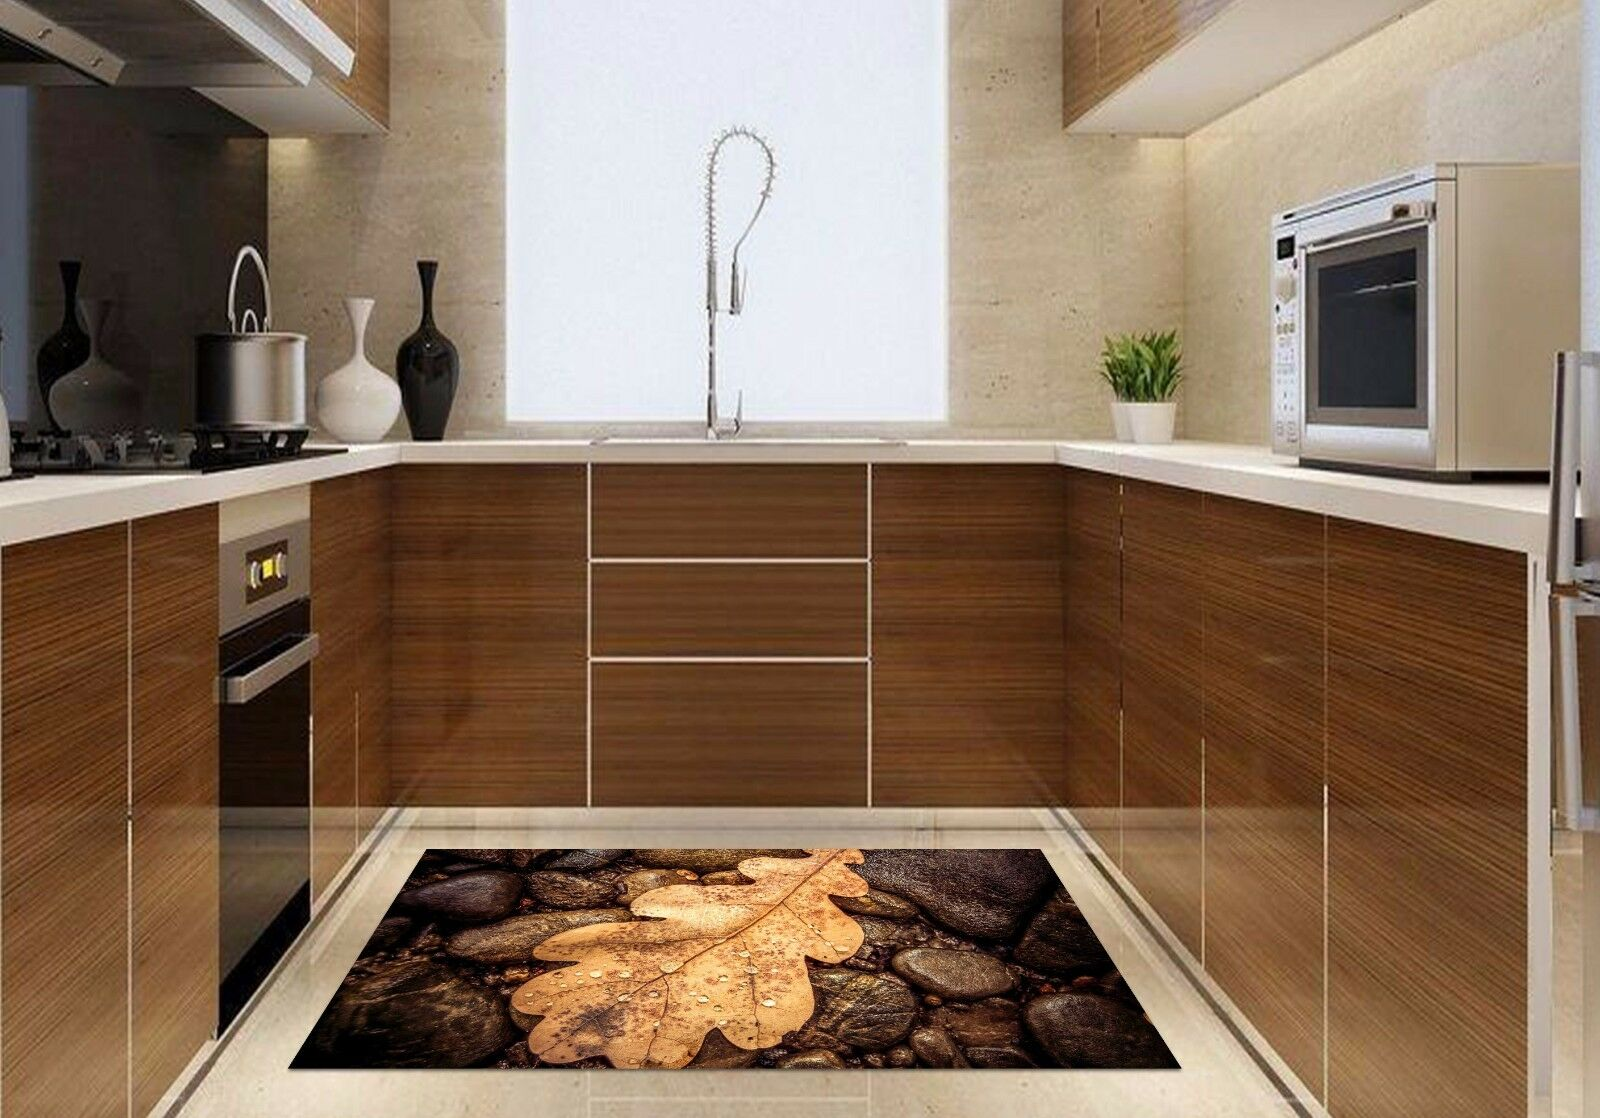 3D Stone Leaves 734 Kitchen Mat Floor Murals Wall Print Wall Deco UK Carly